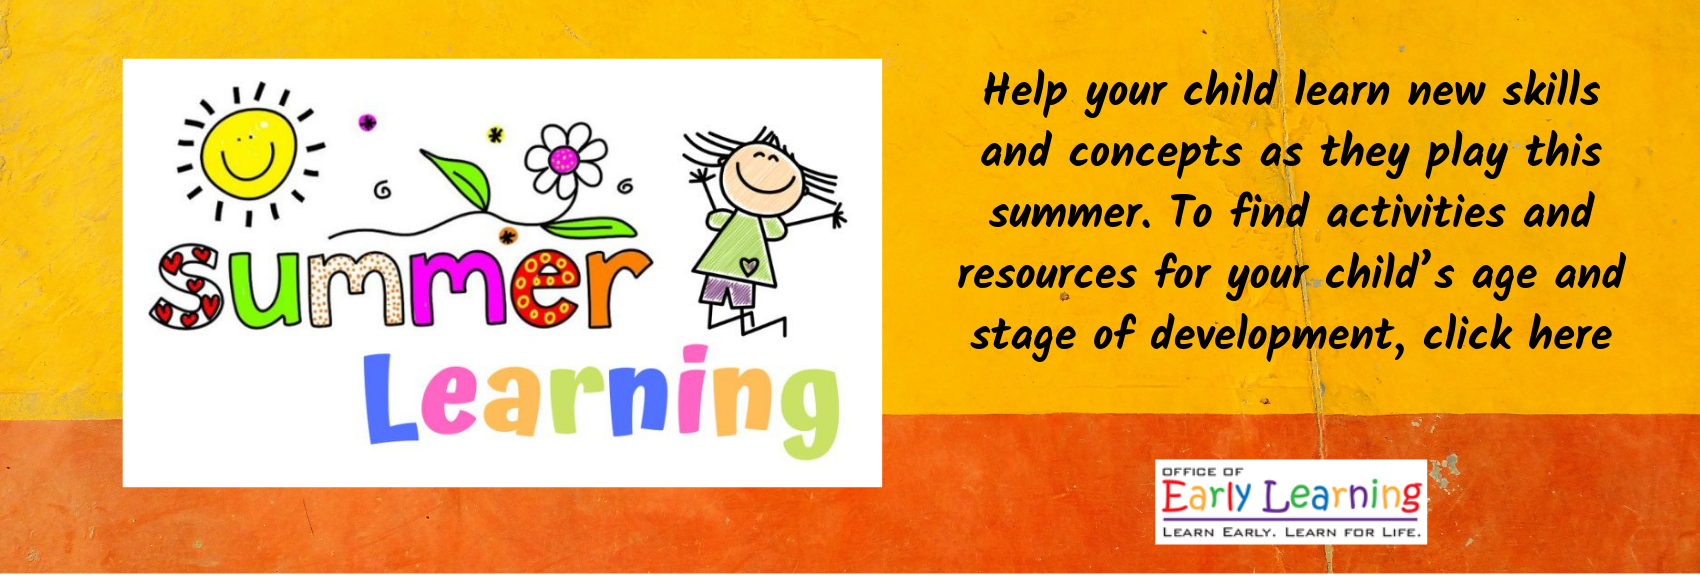 Help your child learn new skills and concepts as they play this summer. To find activities and resources for your child's age and stage of development, click here